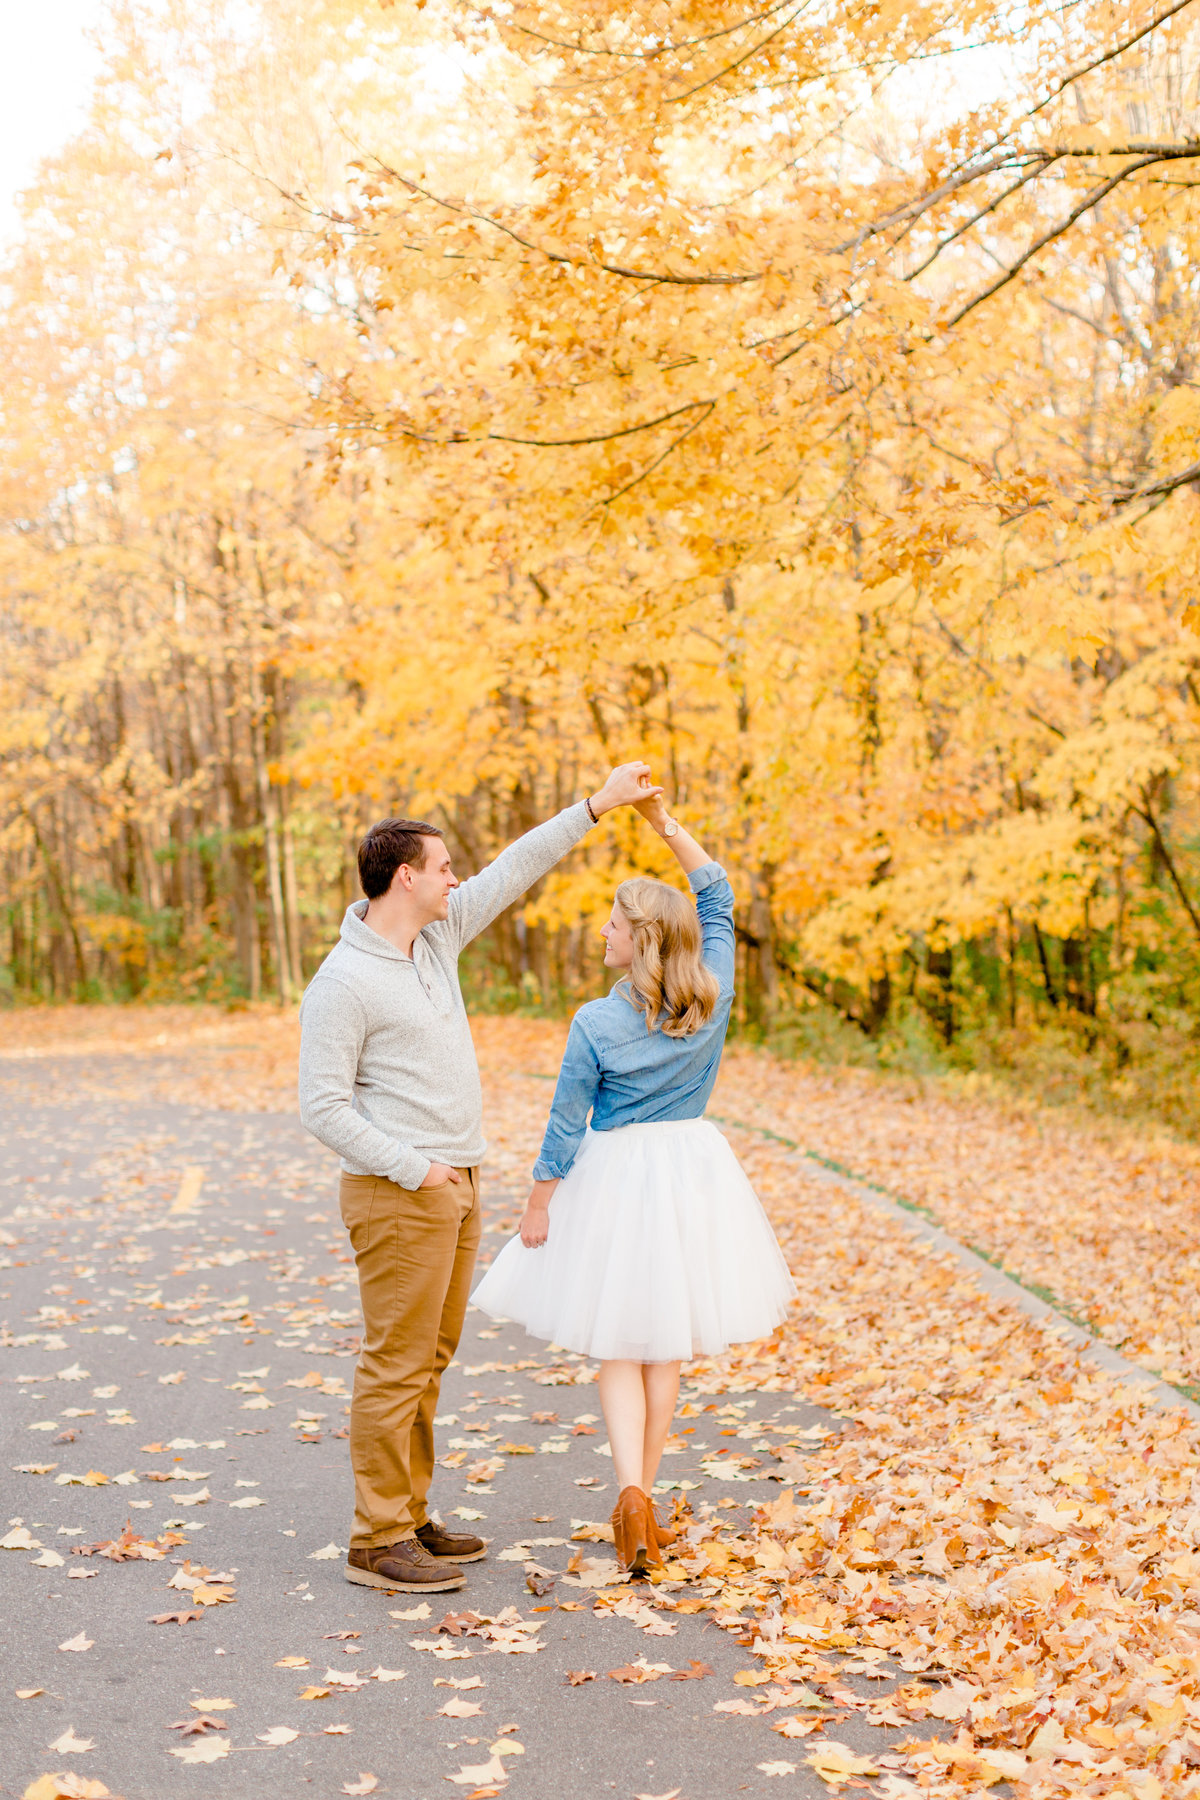 Molly-Derek-Engagement-9295